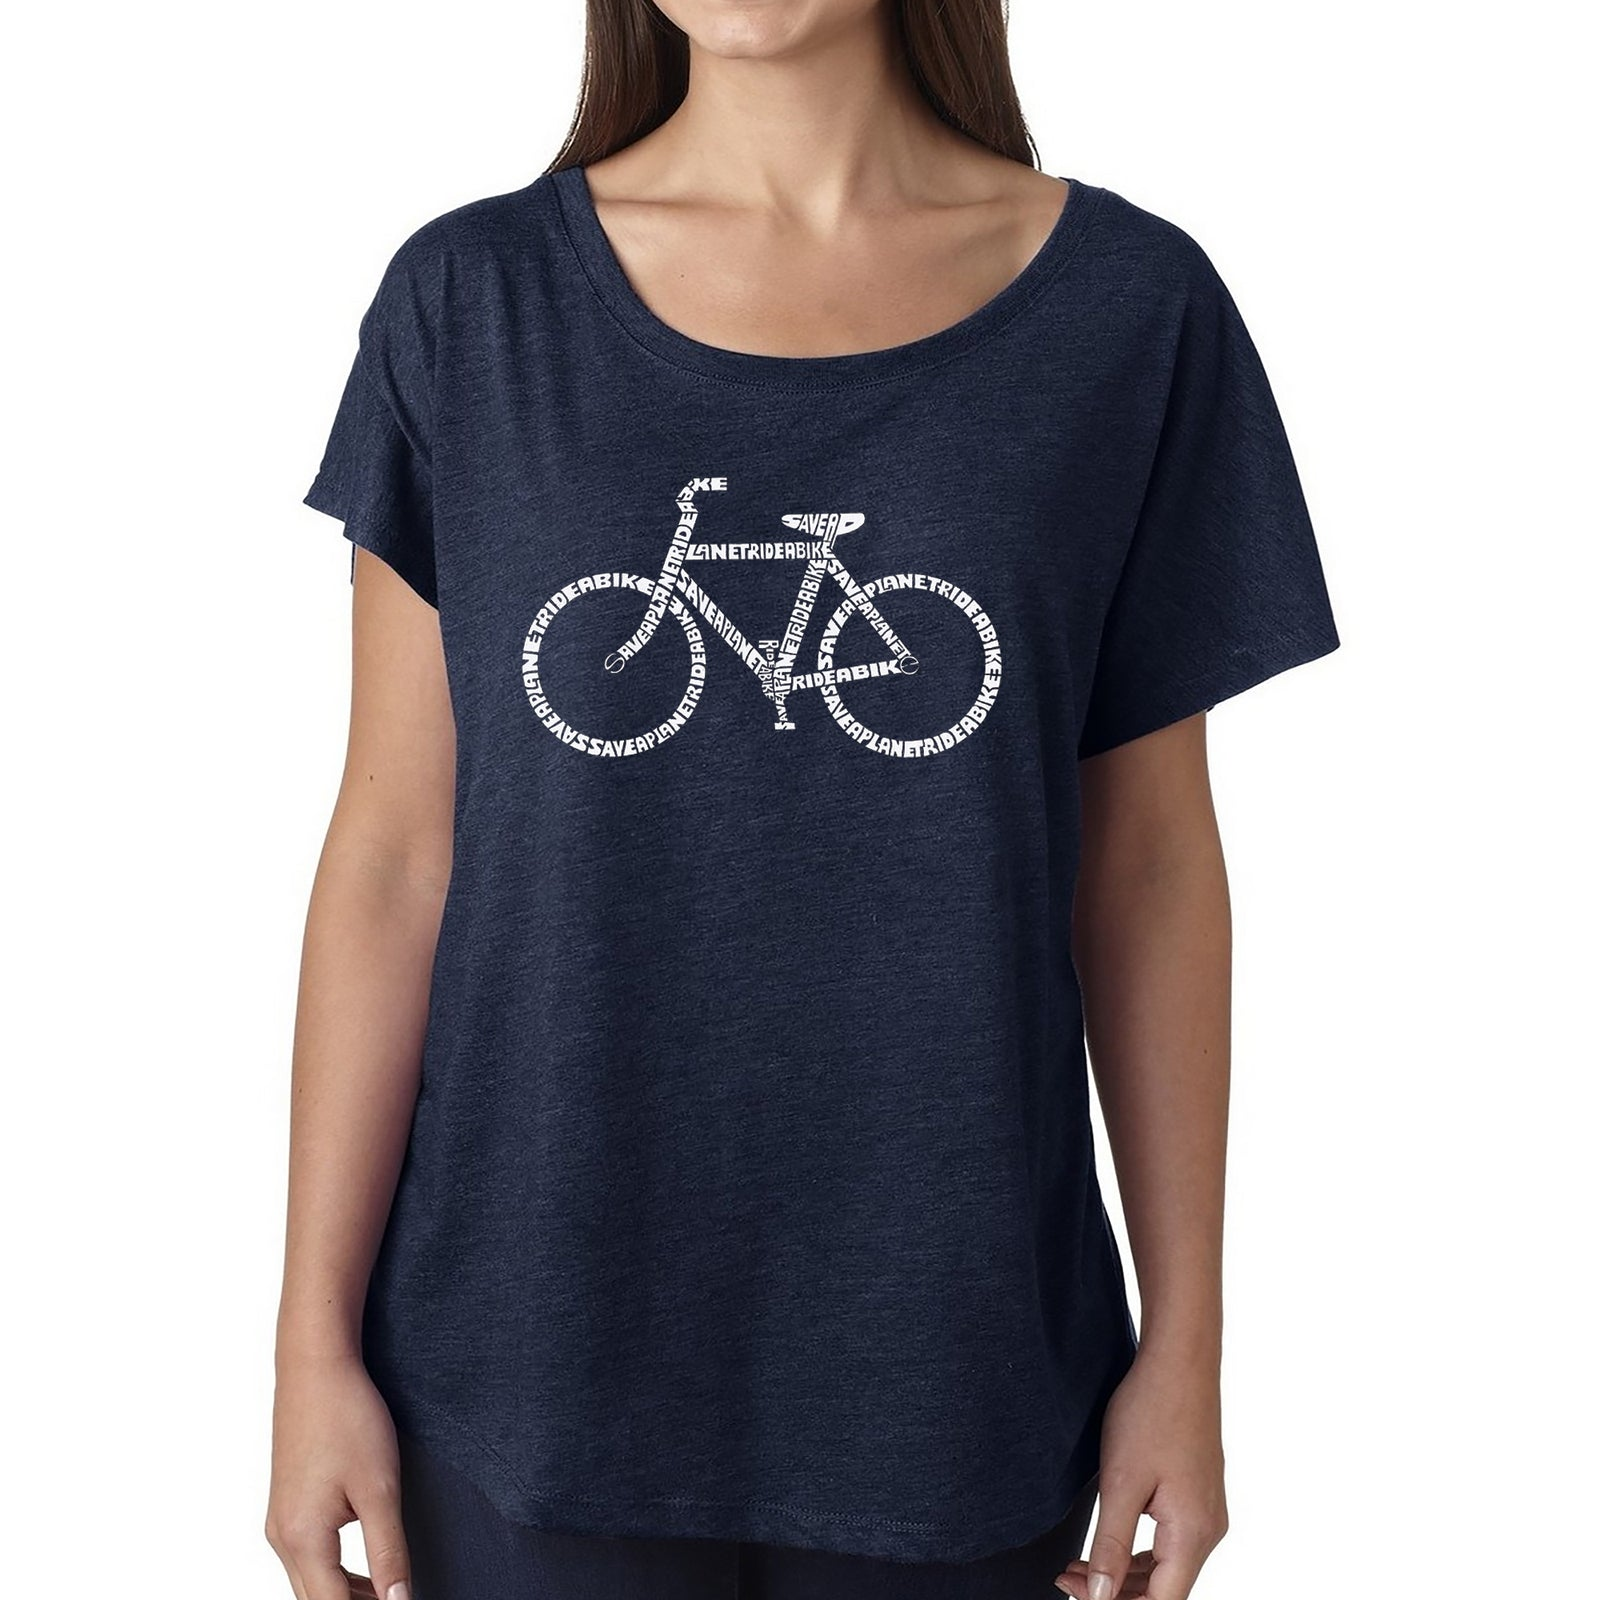 Women's Loose Fit Dolman Cut Word Art Shirt - SAVE A PLANET, RIDE A BIKE